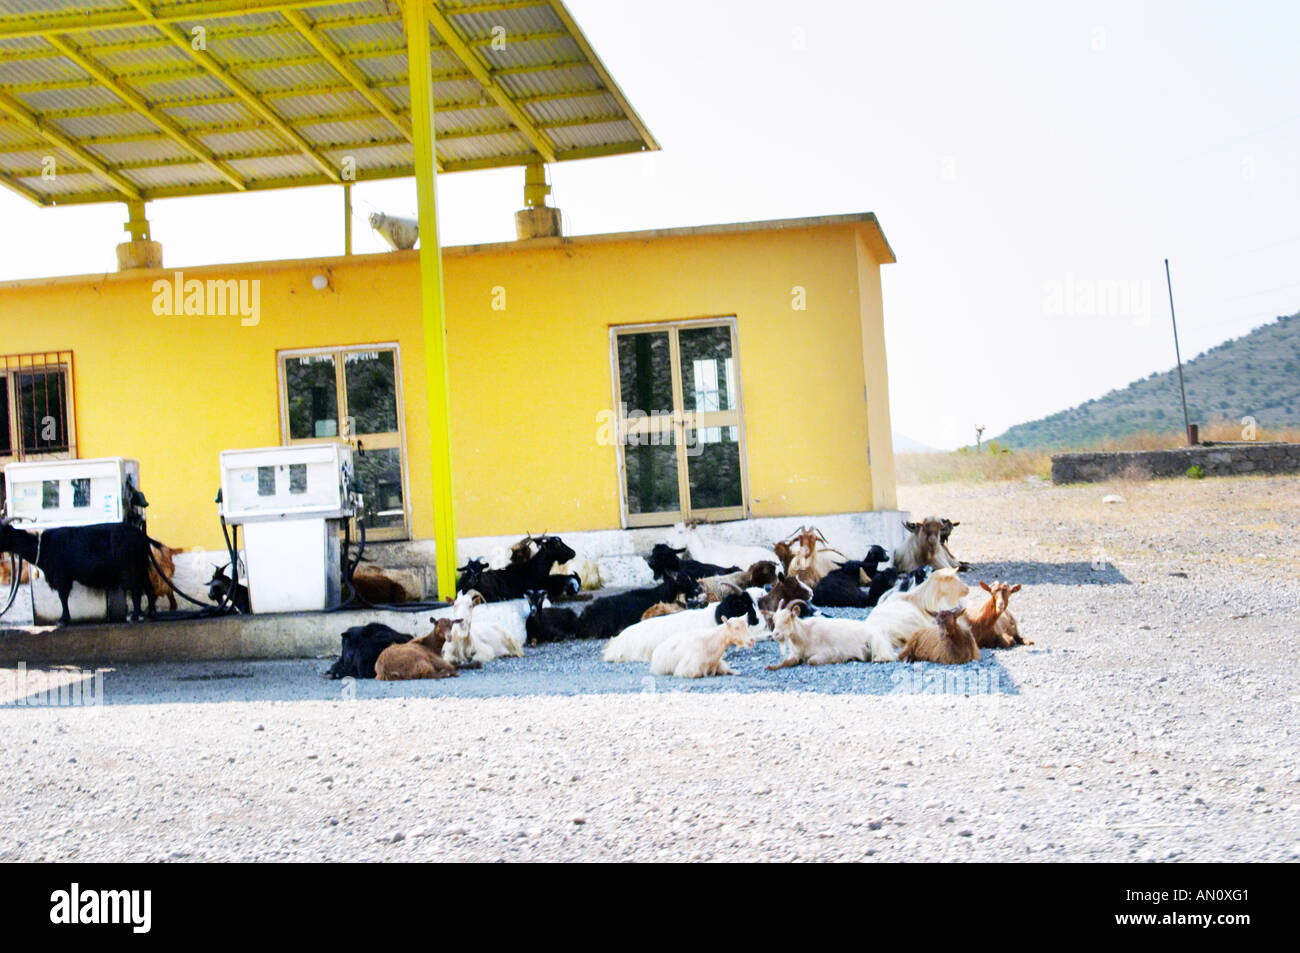 A gas station petrol station in the country side with free roaming goats are getting shelter in the shade from the scorching sun. Near Hani i Hoti close to the Montenegro border. Albania, Balkan, Europe. - Stock Image